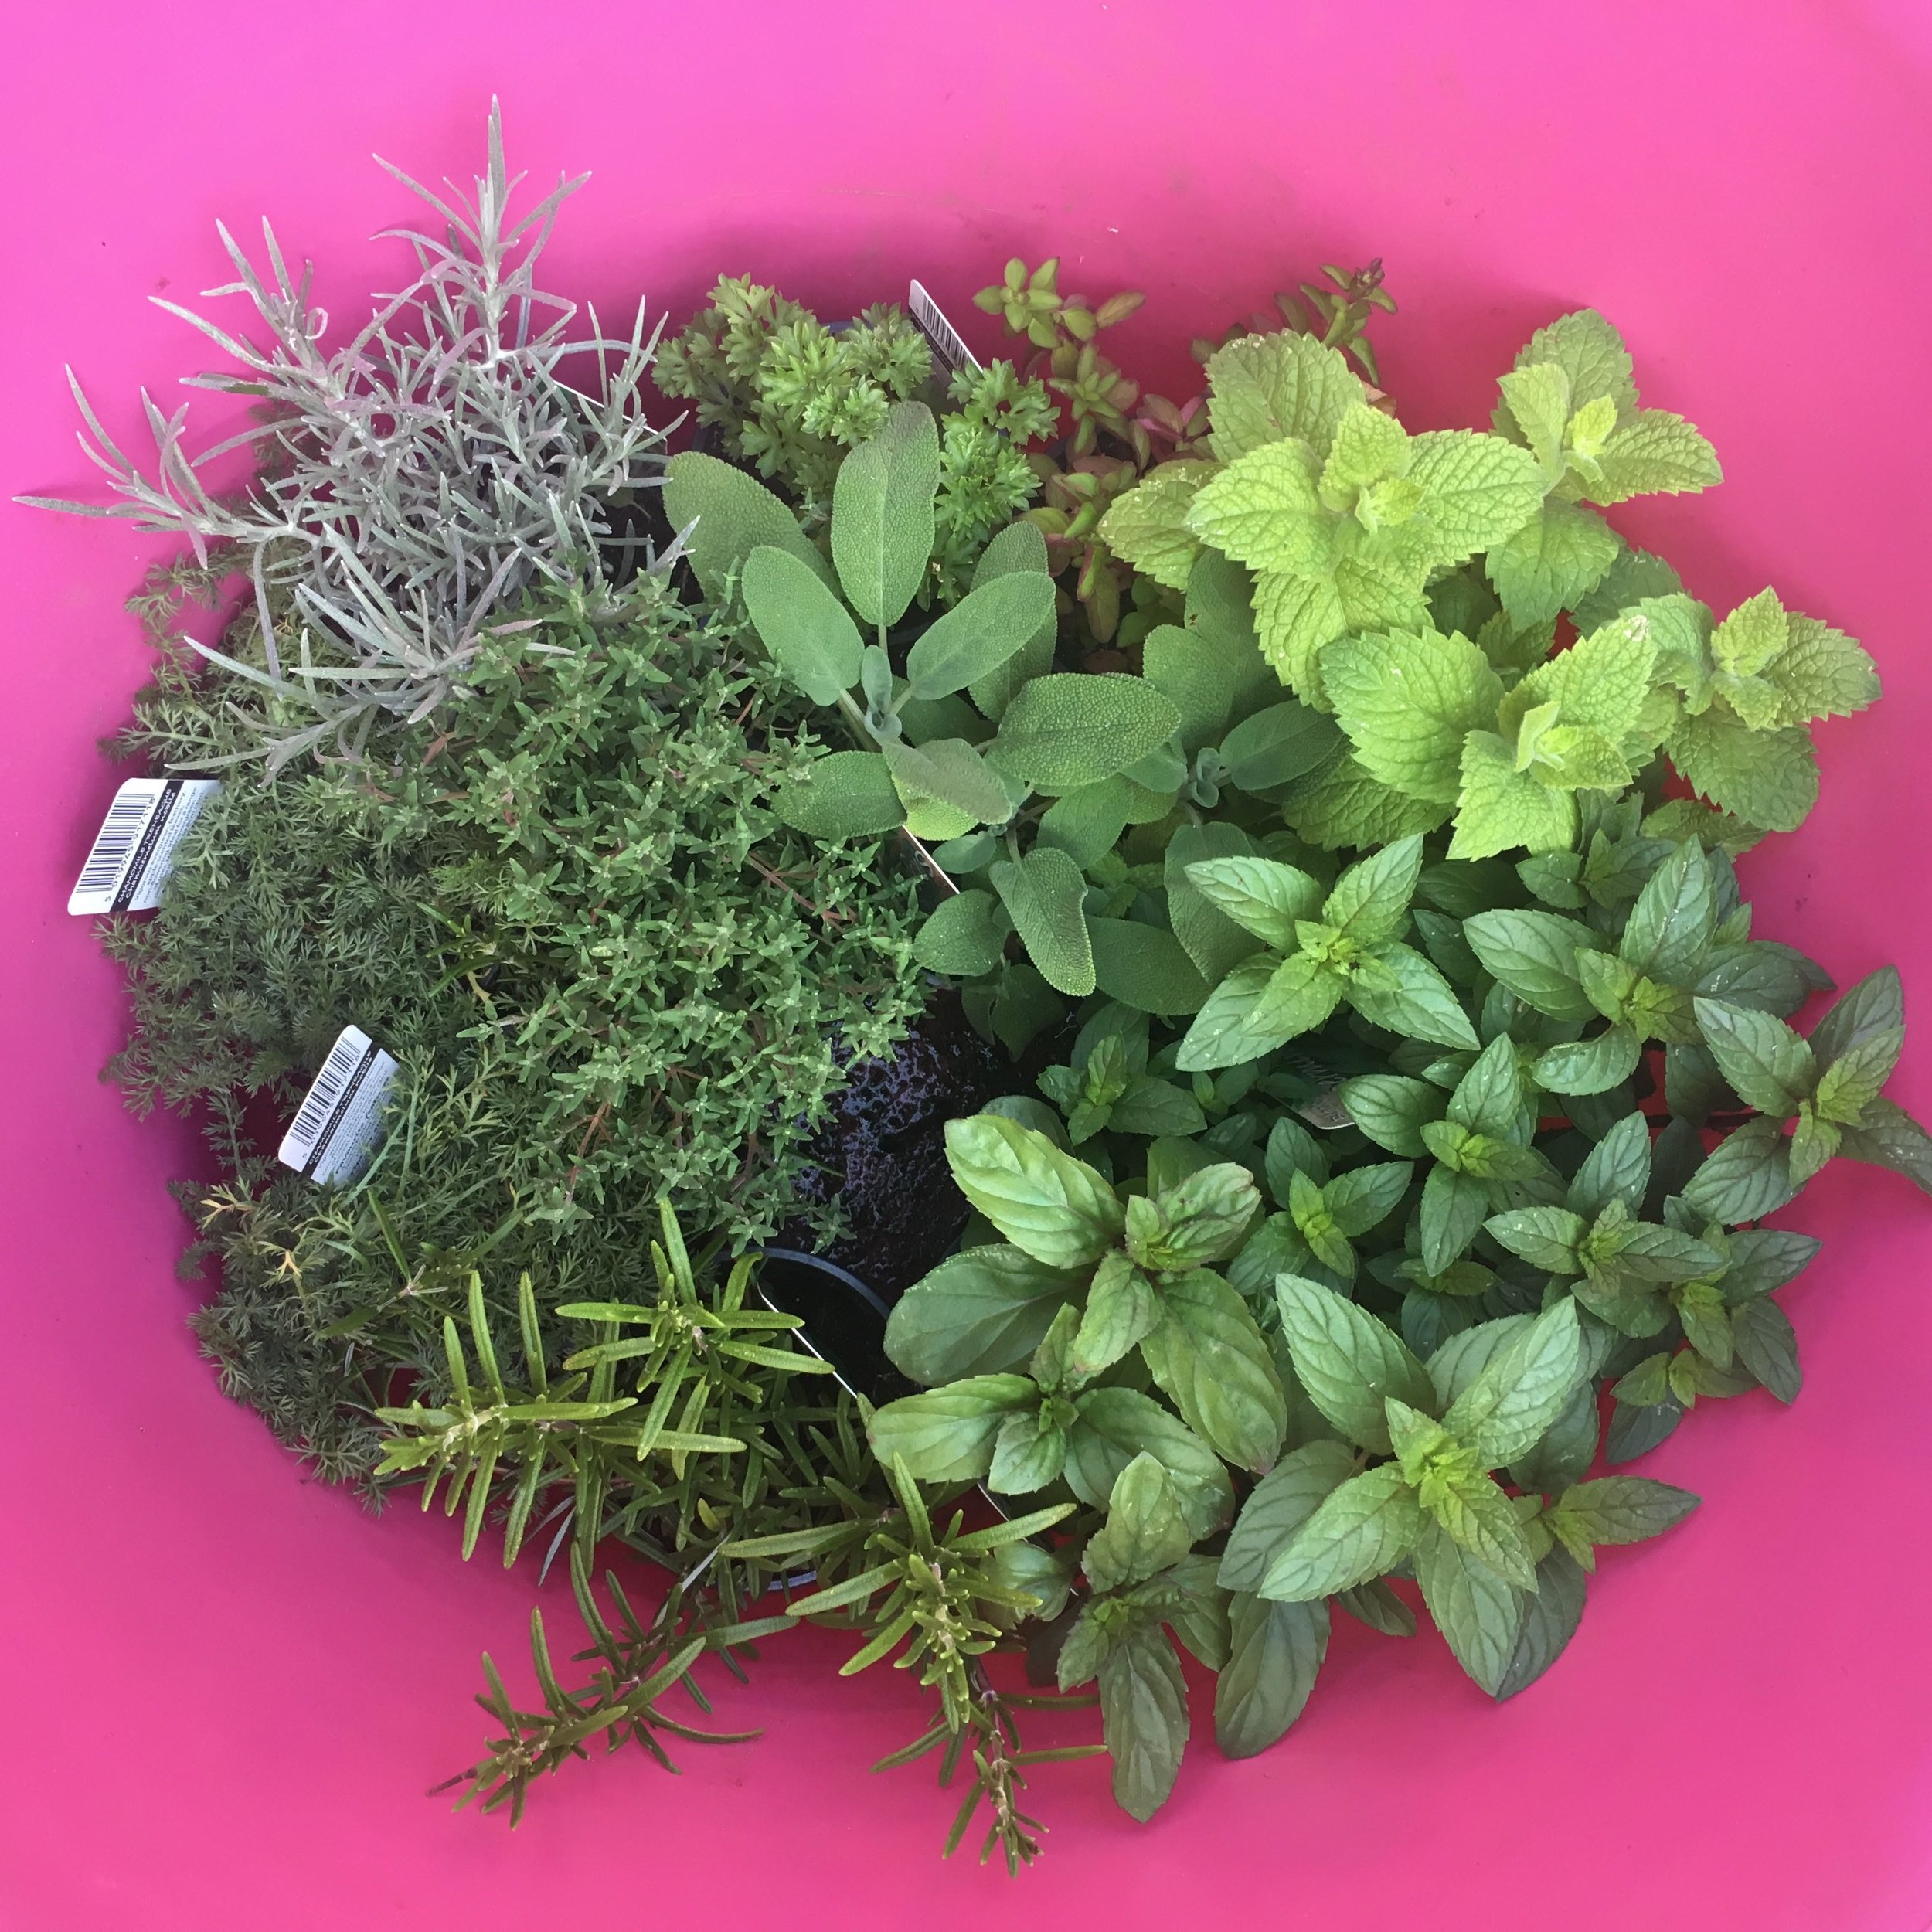 my next job - finding a new home for the herbs